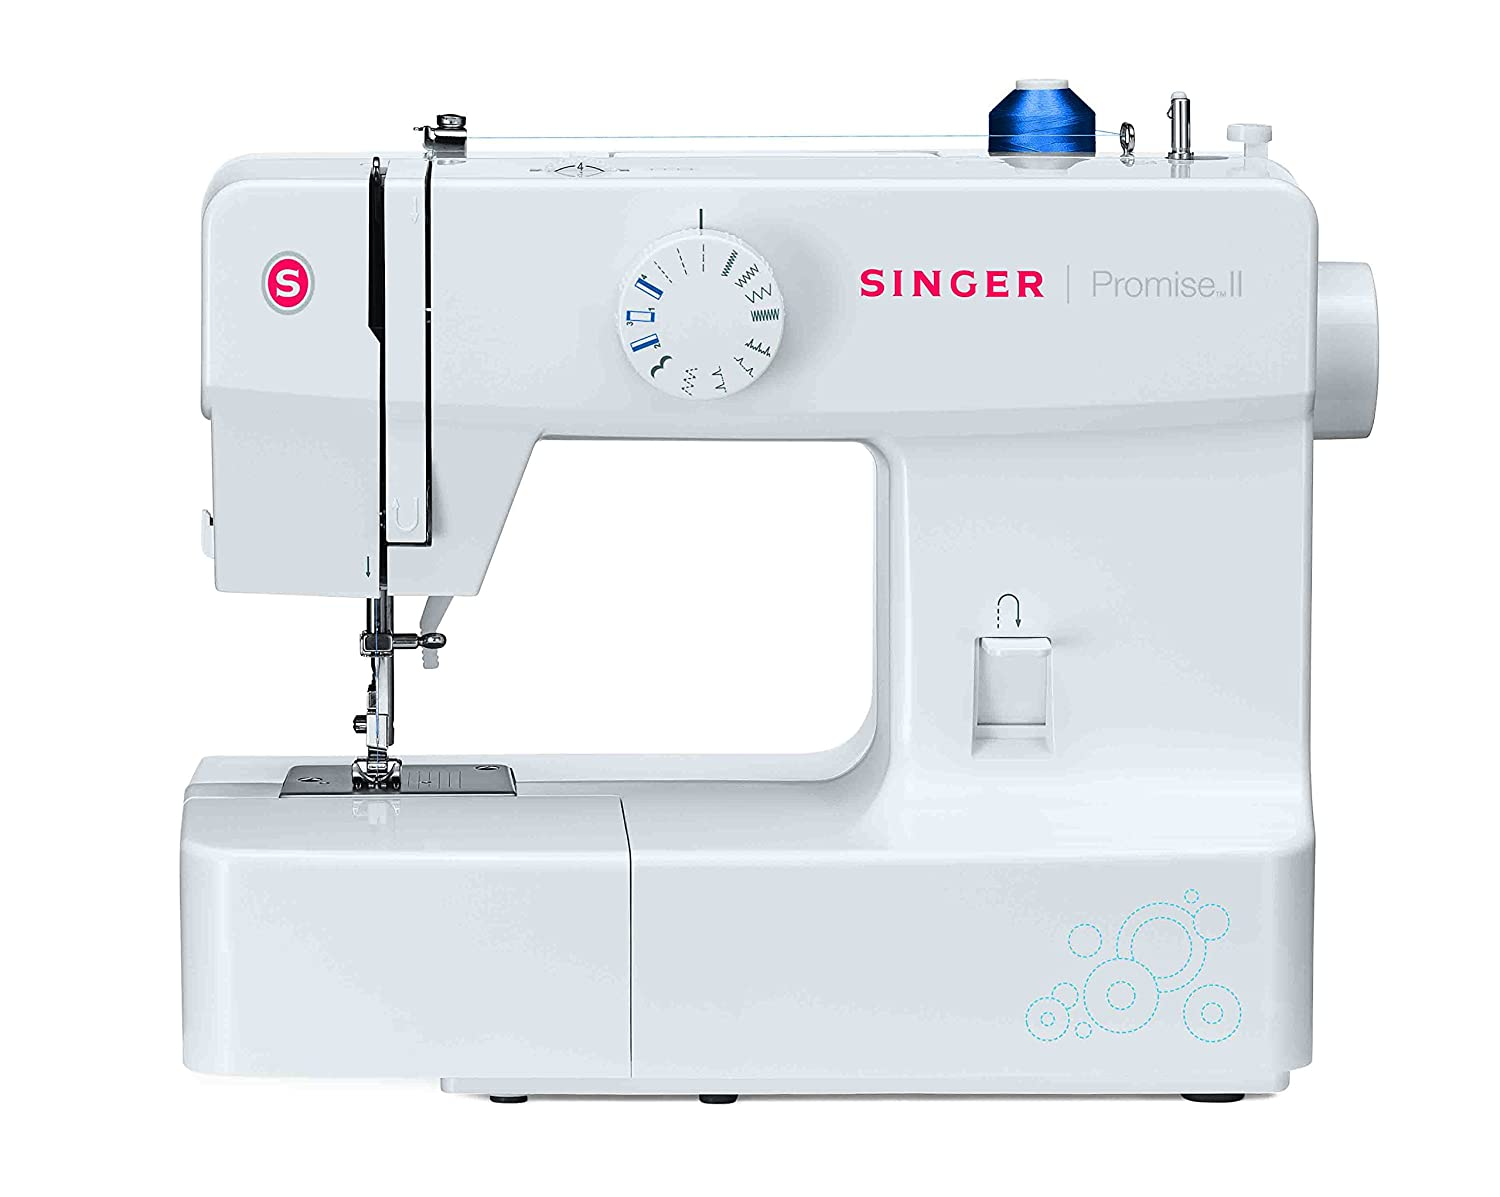 Singer Promise 1408 vs Promise II 1512: Which is For You